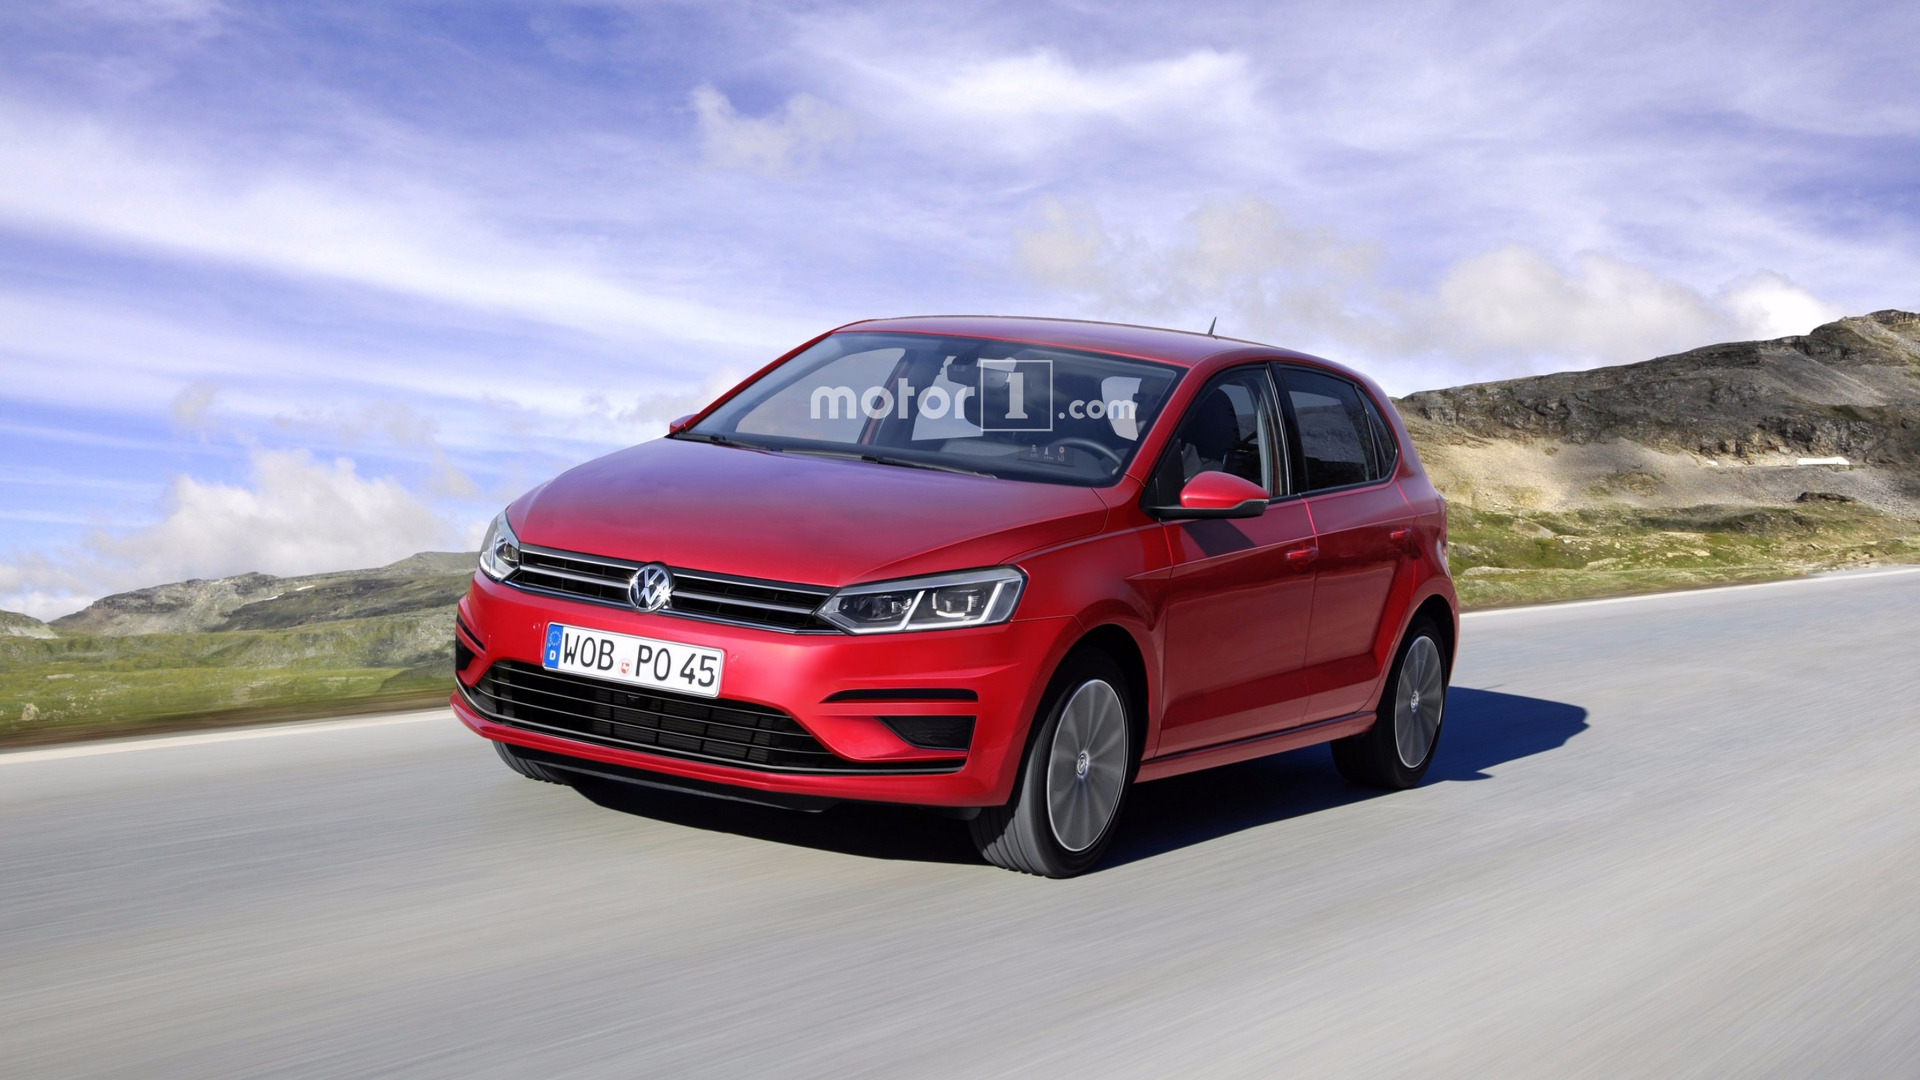 Will The 2018 Vw Polo Will Look Like This Render